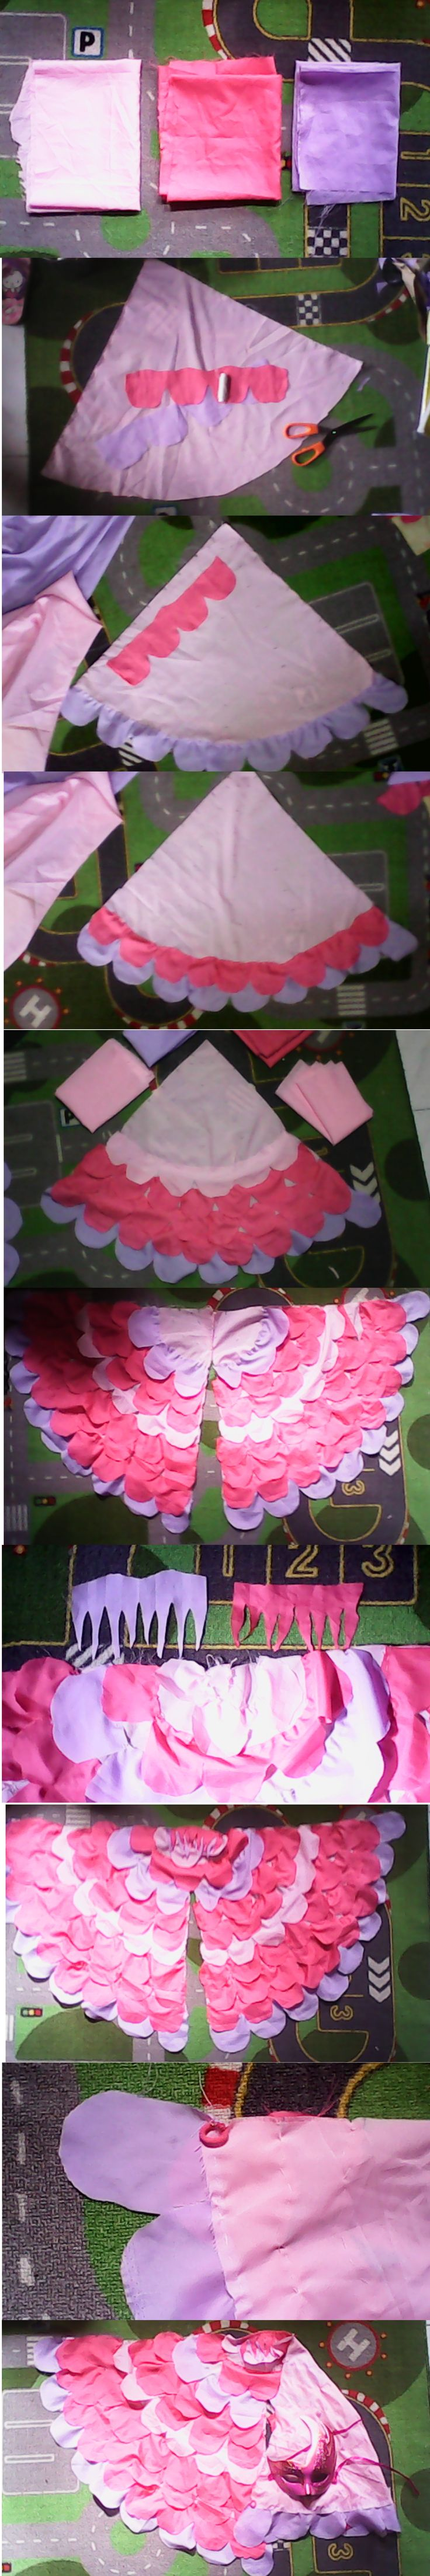 best images about caipirinha mardi gras diy bird wings costume for kids